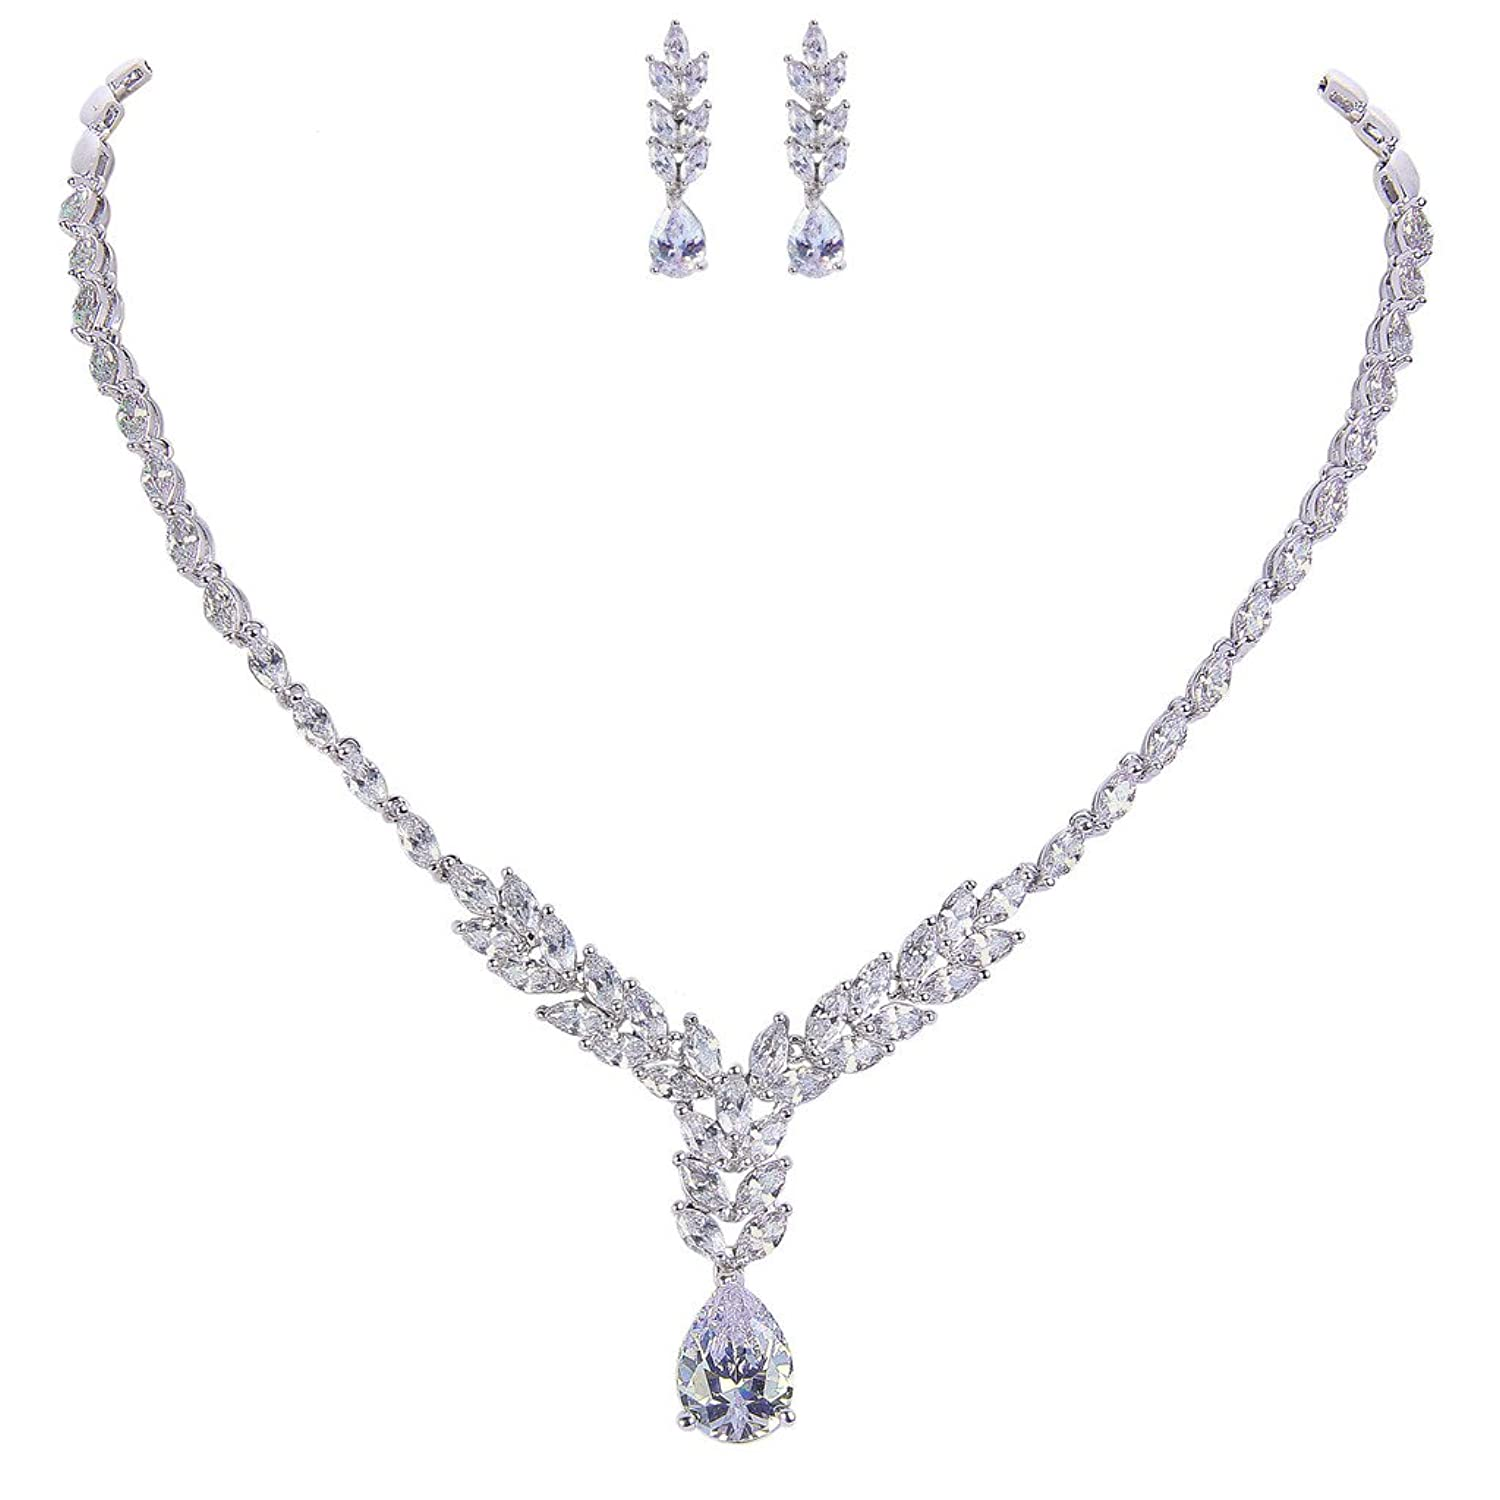 EVER FAITH Silver-Tone Full Cubic Zirconia Elegant Tear Drop Bridal Pendant Necklace Earrings Set Clear